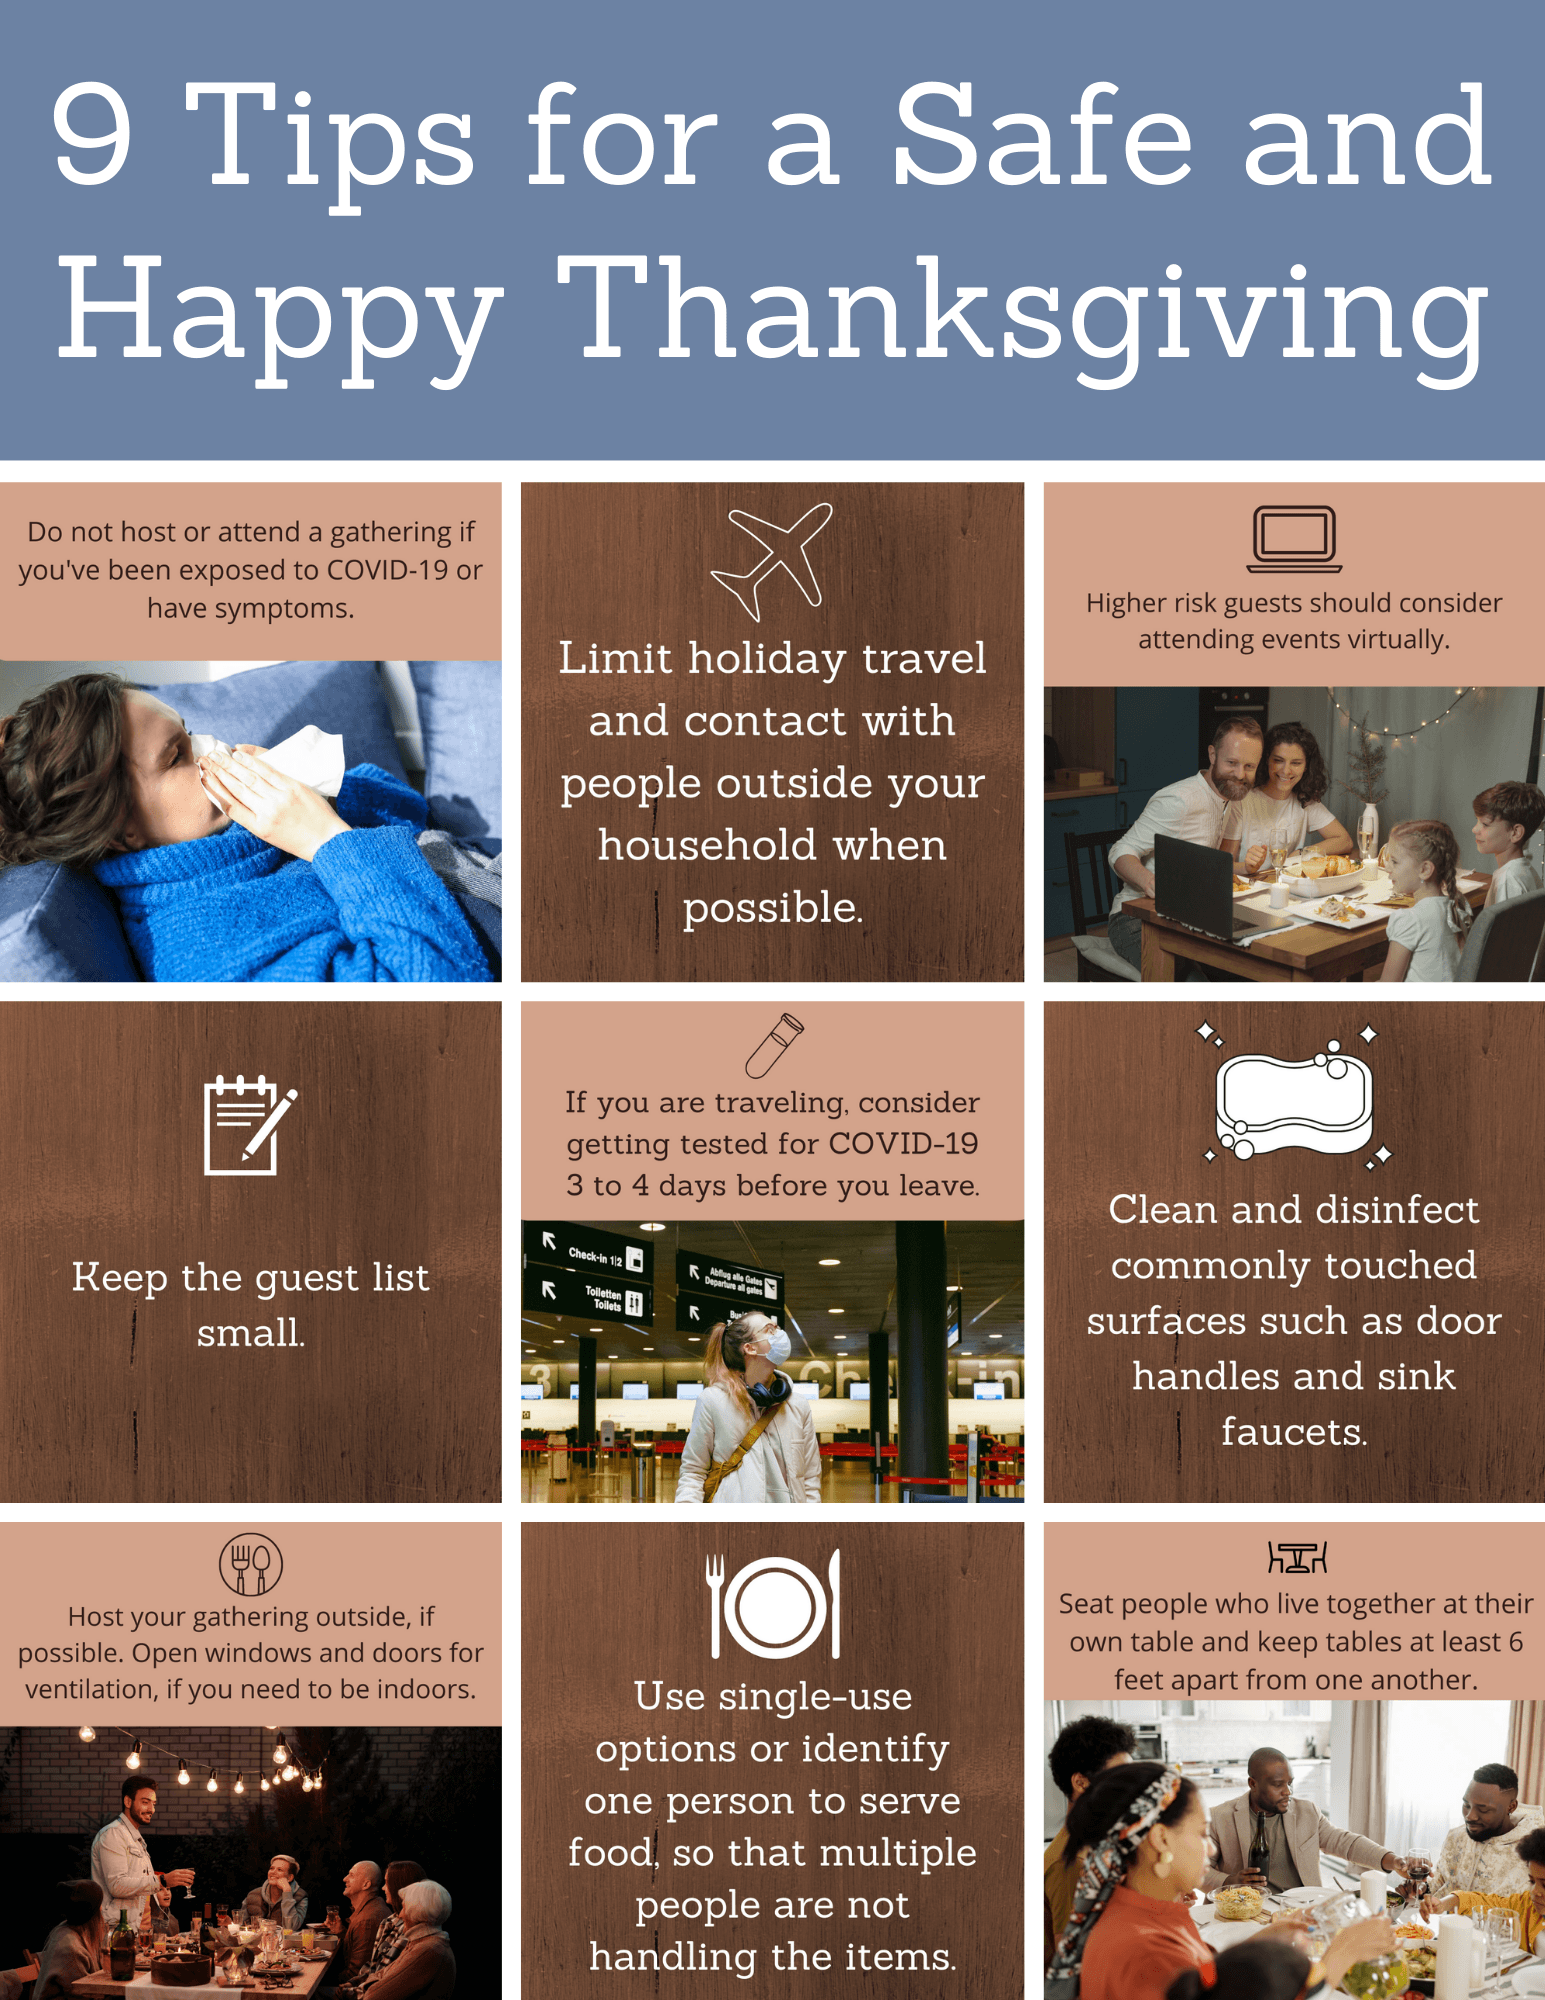 9 Tips for a Safe and Happy Thanksgiving